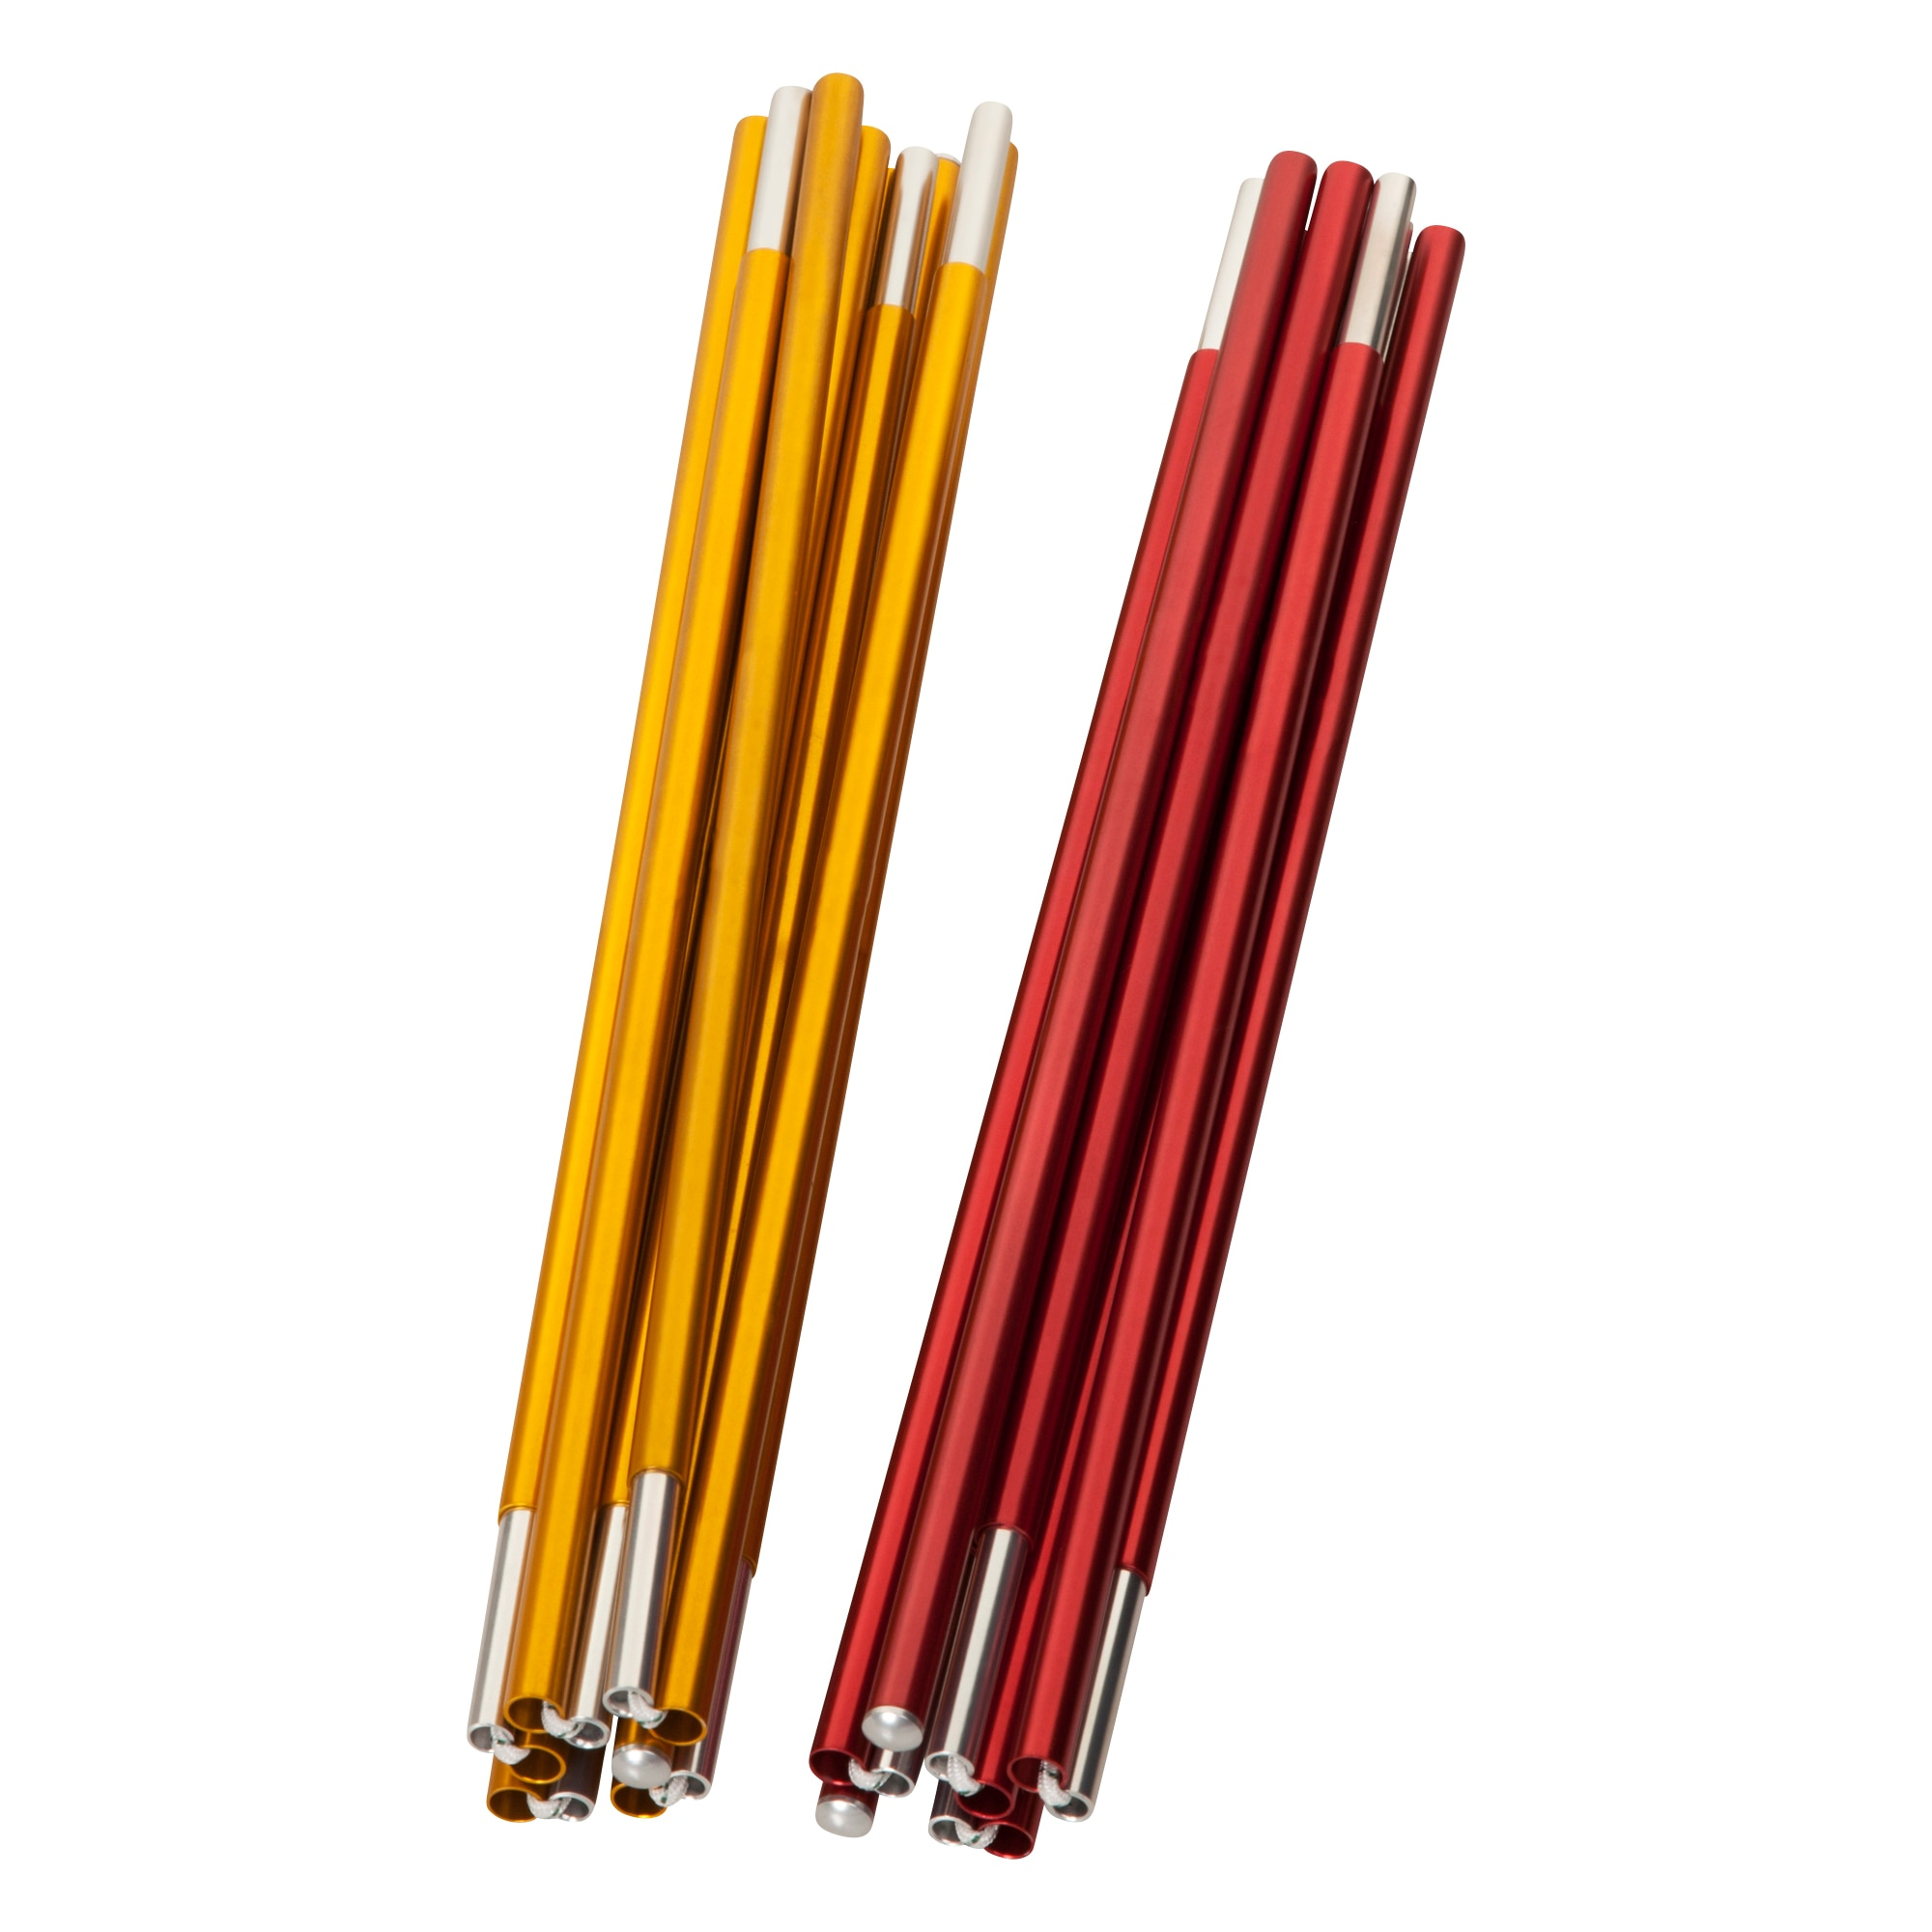 Tent Poles for 2-Pers Tent (2 Poles)